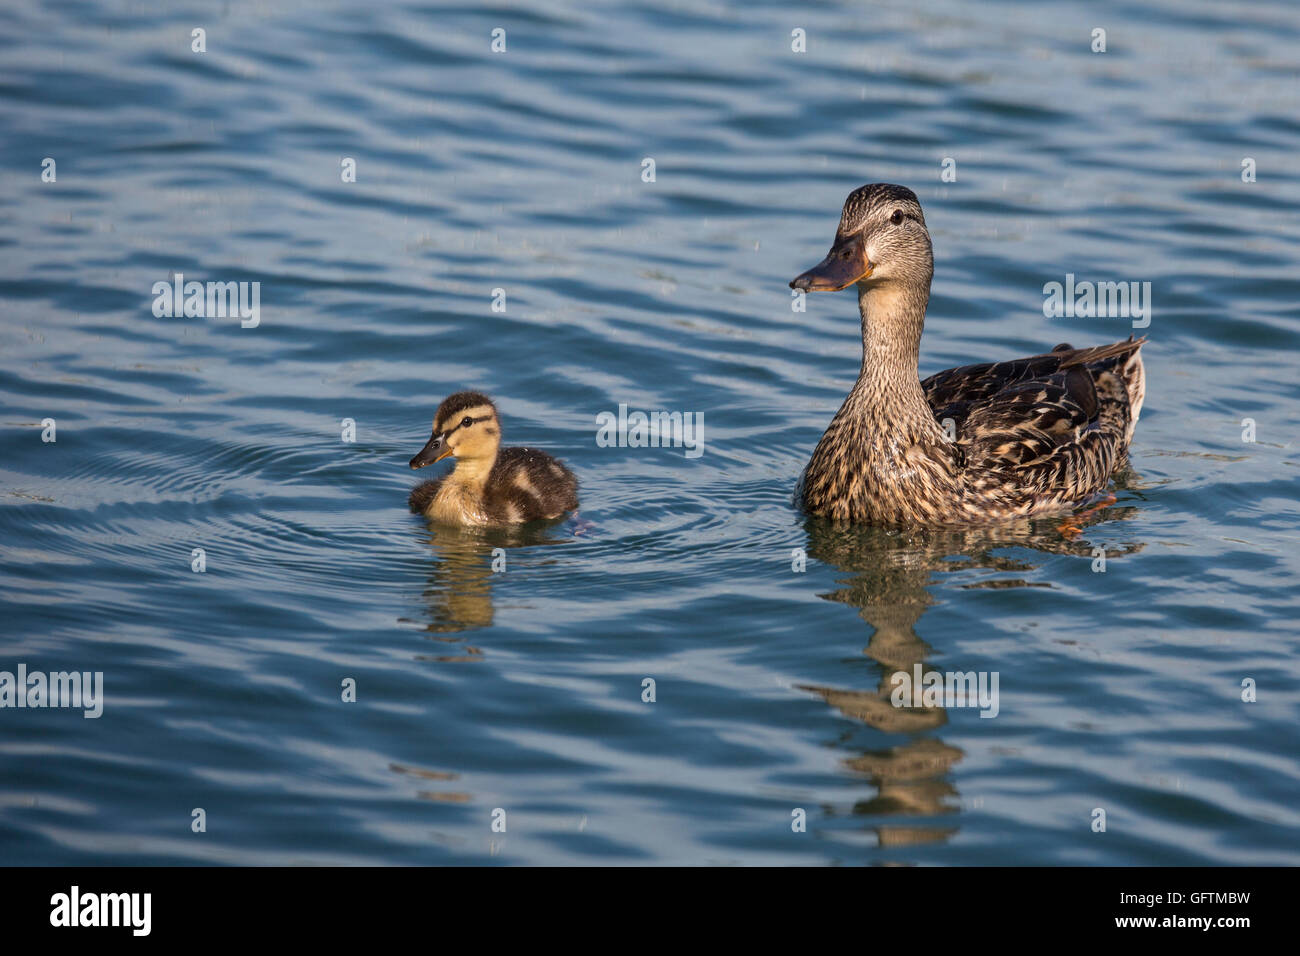 Windsor, Ontario, Canada - A female mallard (Anas platyrhynchos) and her duckling on the Detroit River. - Stock Image